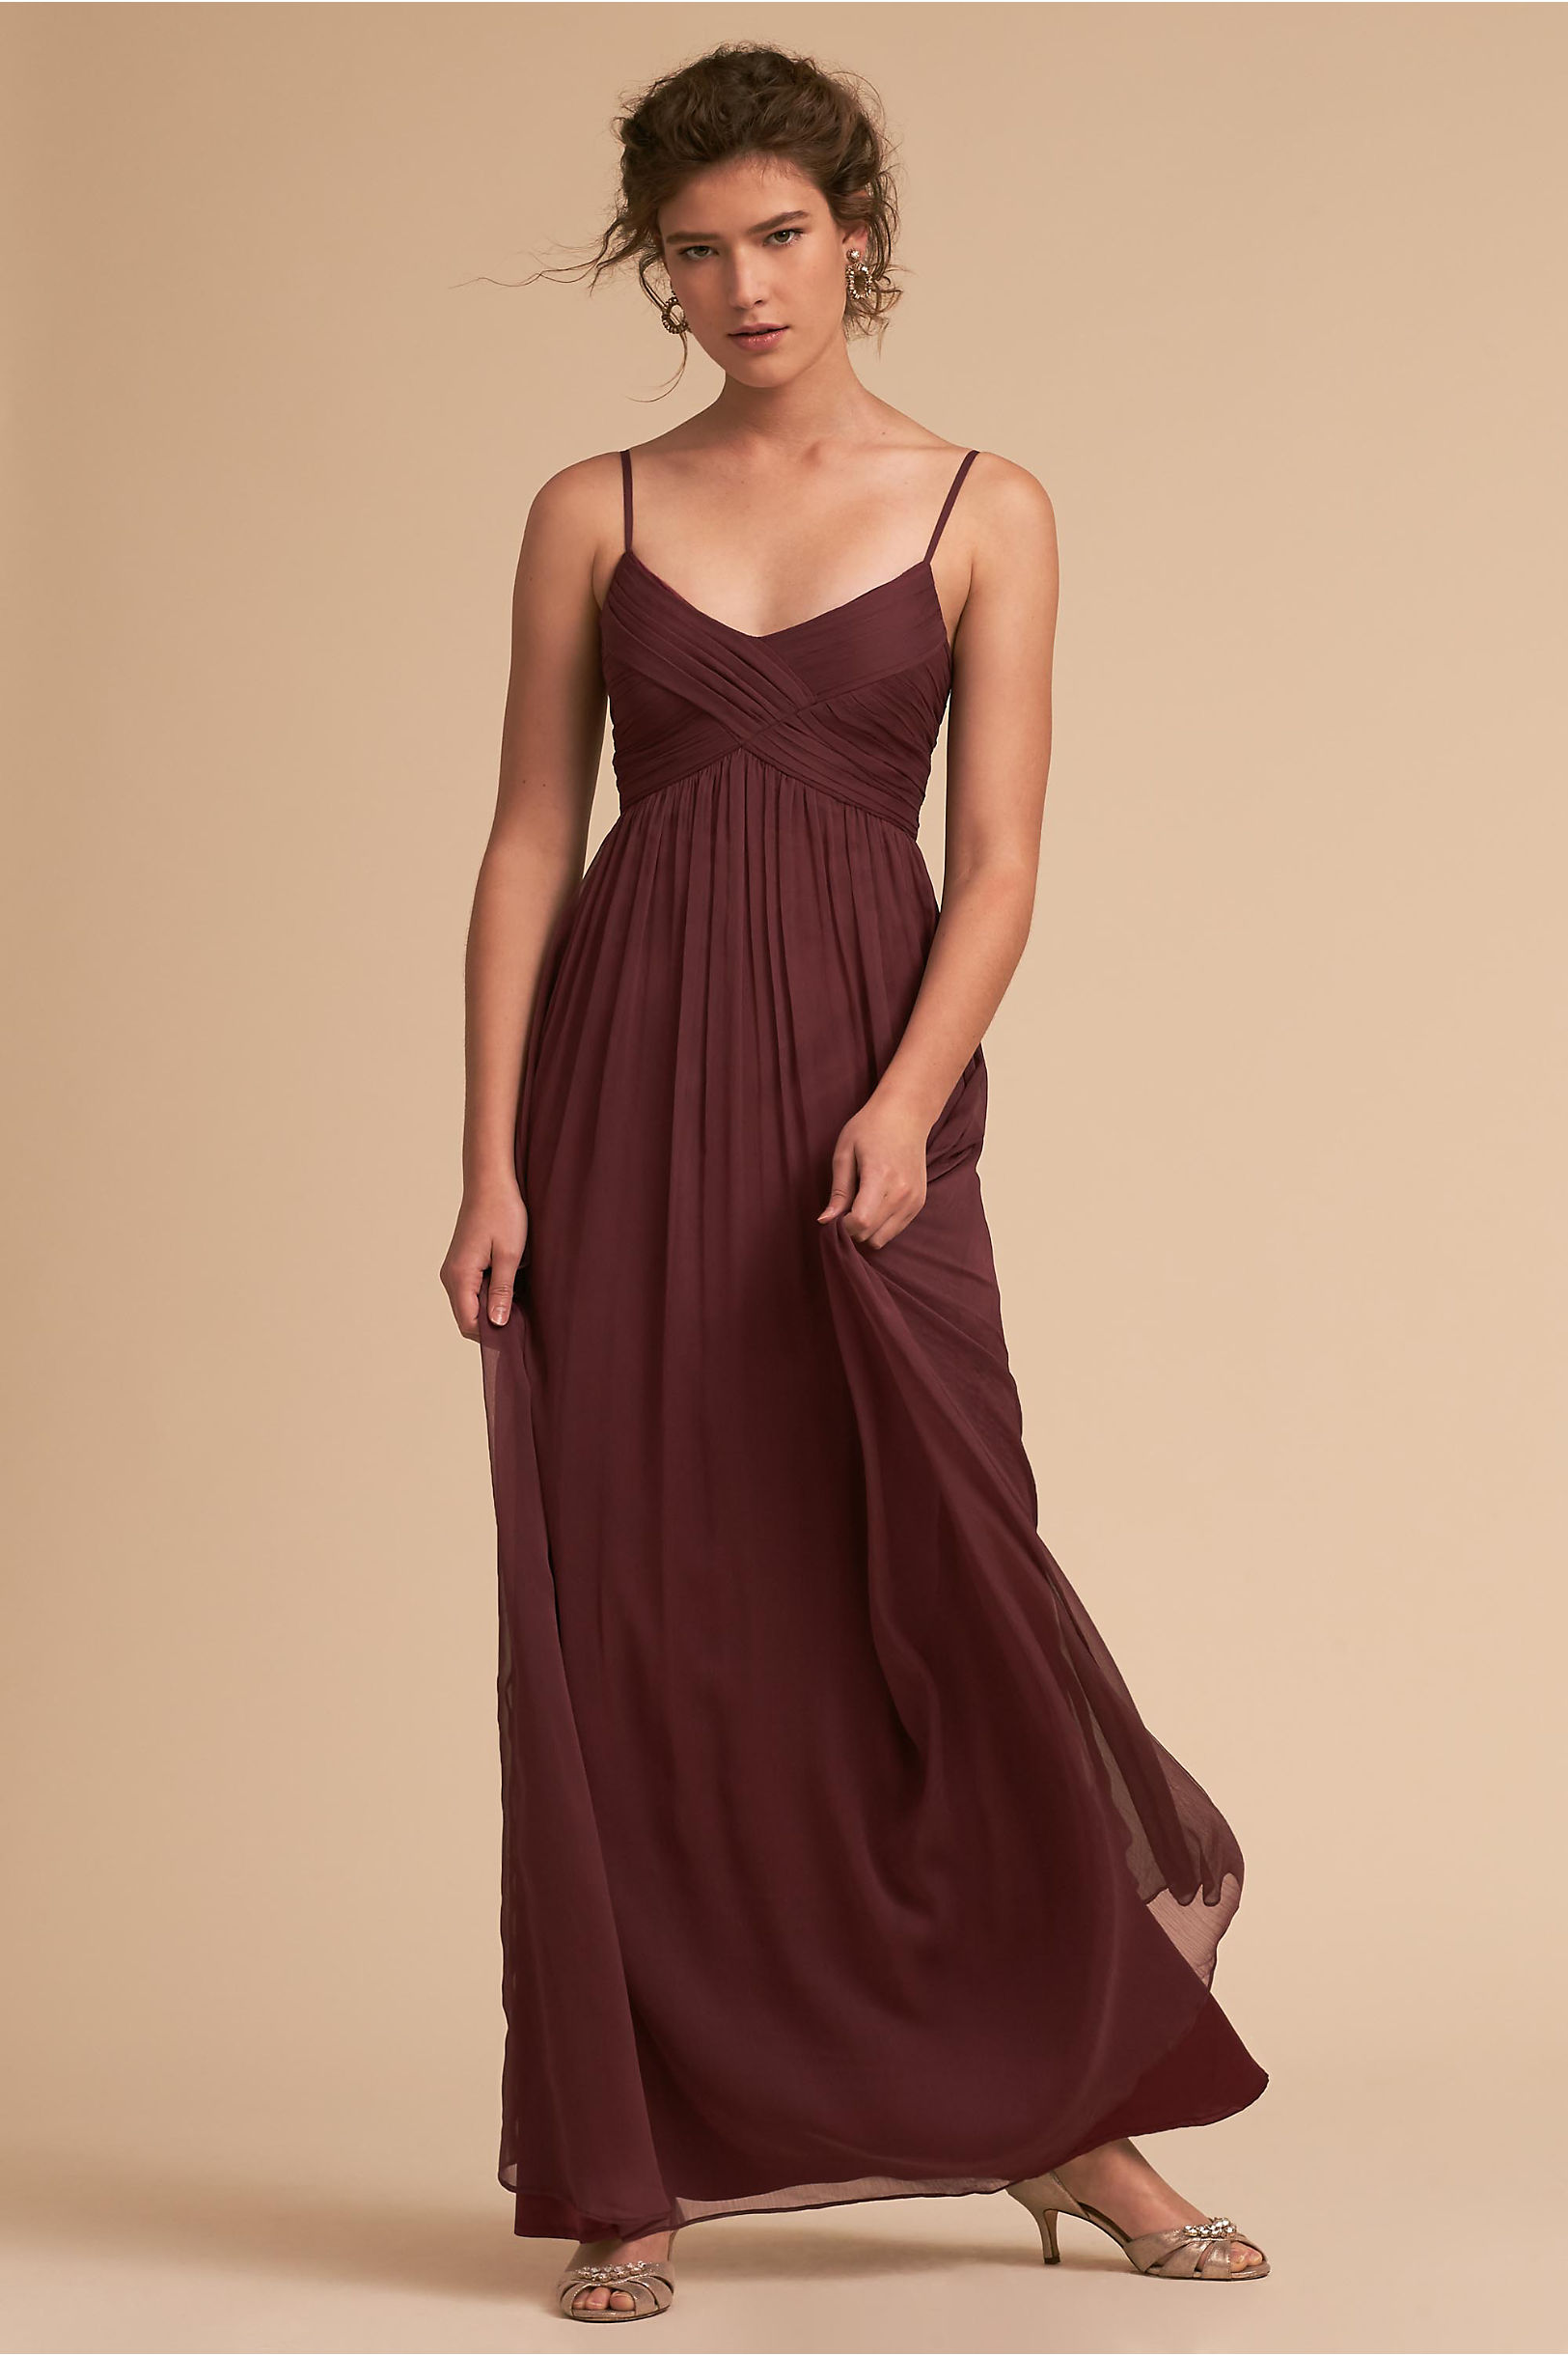 Burgundy red wine colored bridesmaid dresses bhldn brigitte dress ombrellifo Gallery